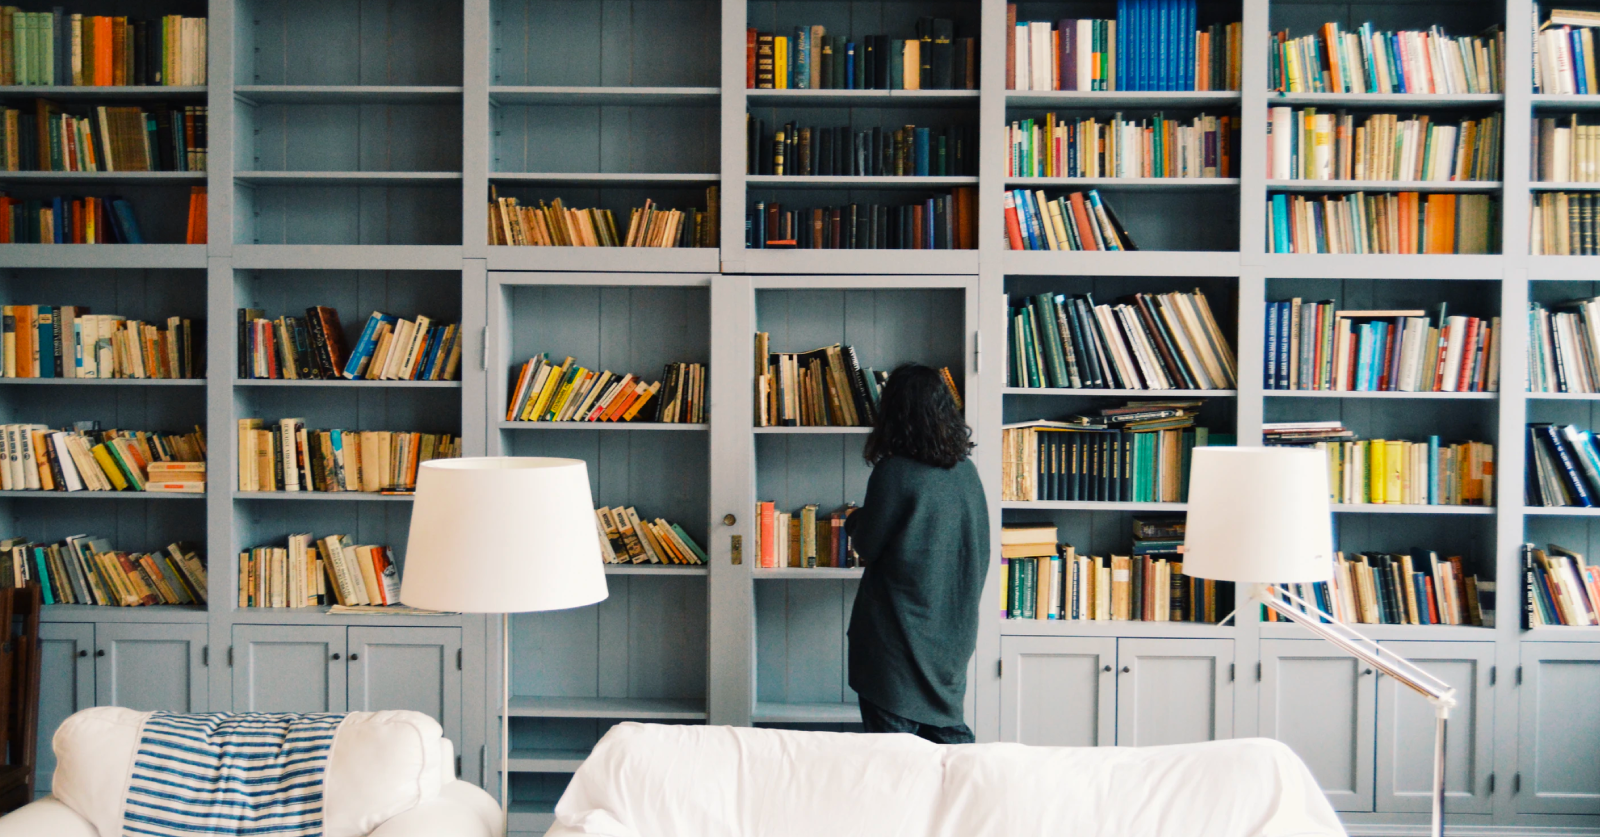 5 New Books on Leadership We Can't Wait to Check Out